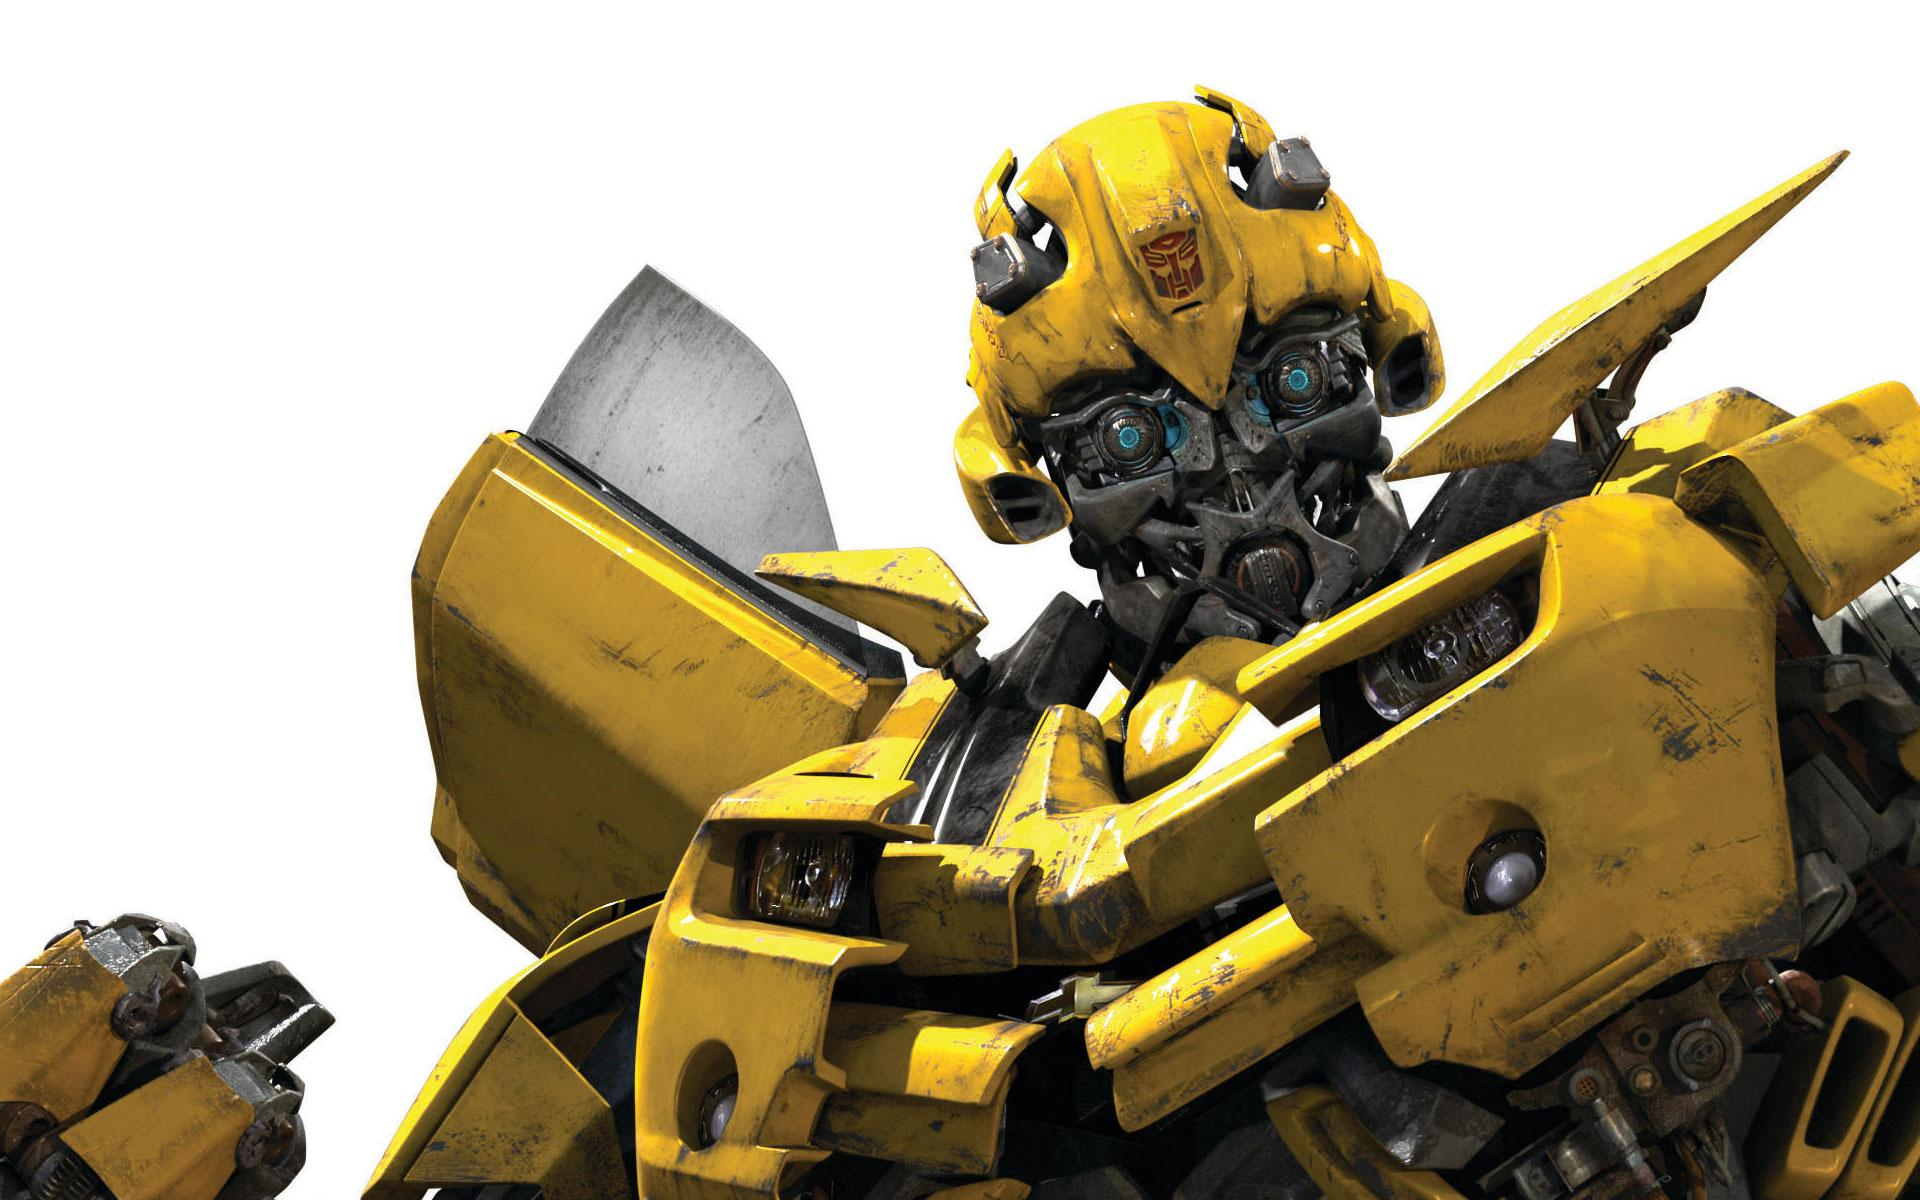 Transformers bumblebee spinoff film in the works - Images of bumblebee from transformers ...